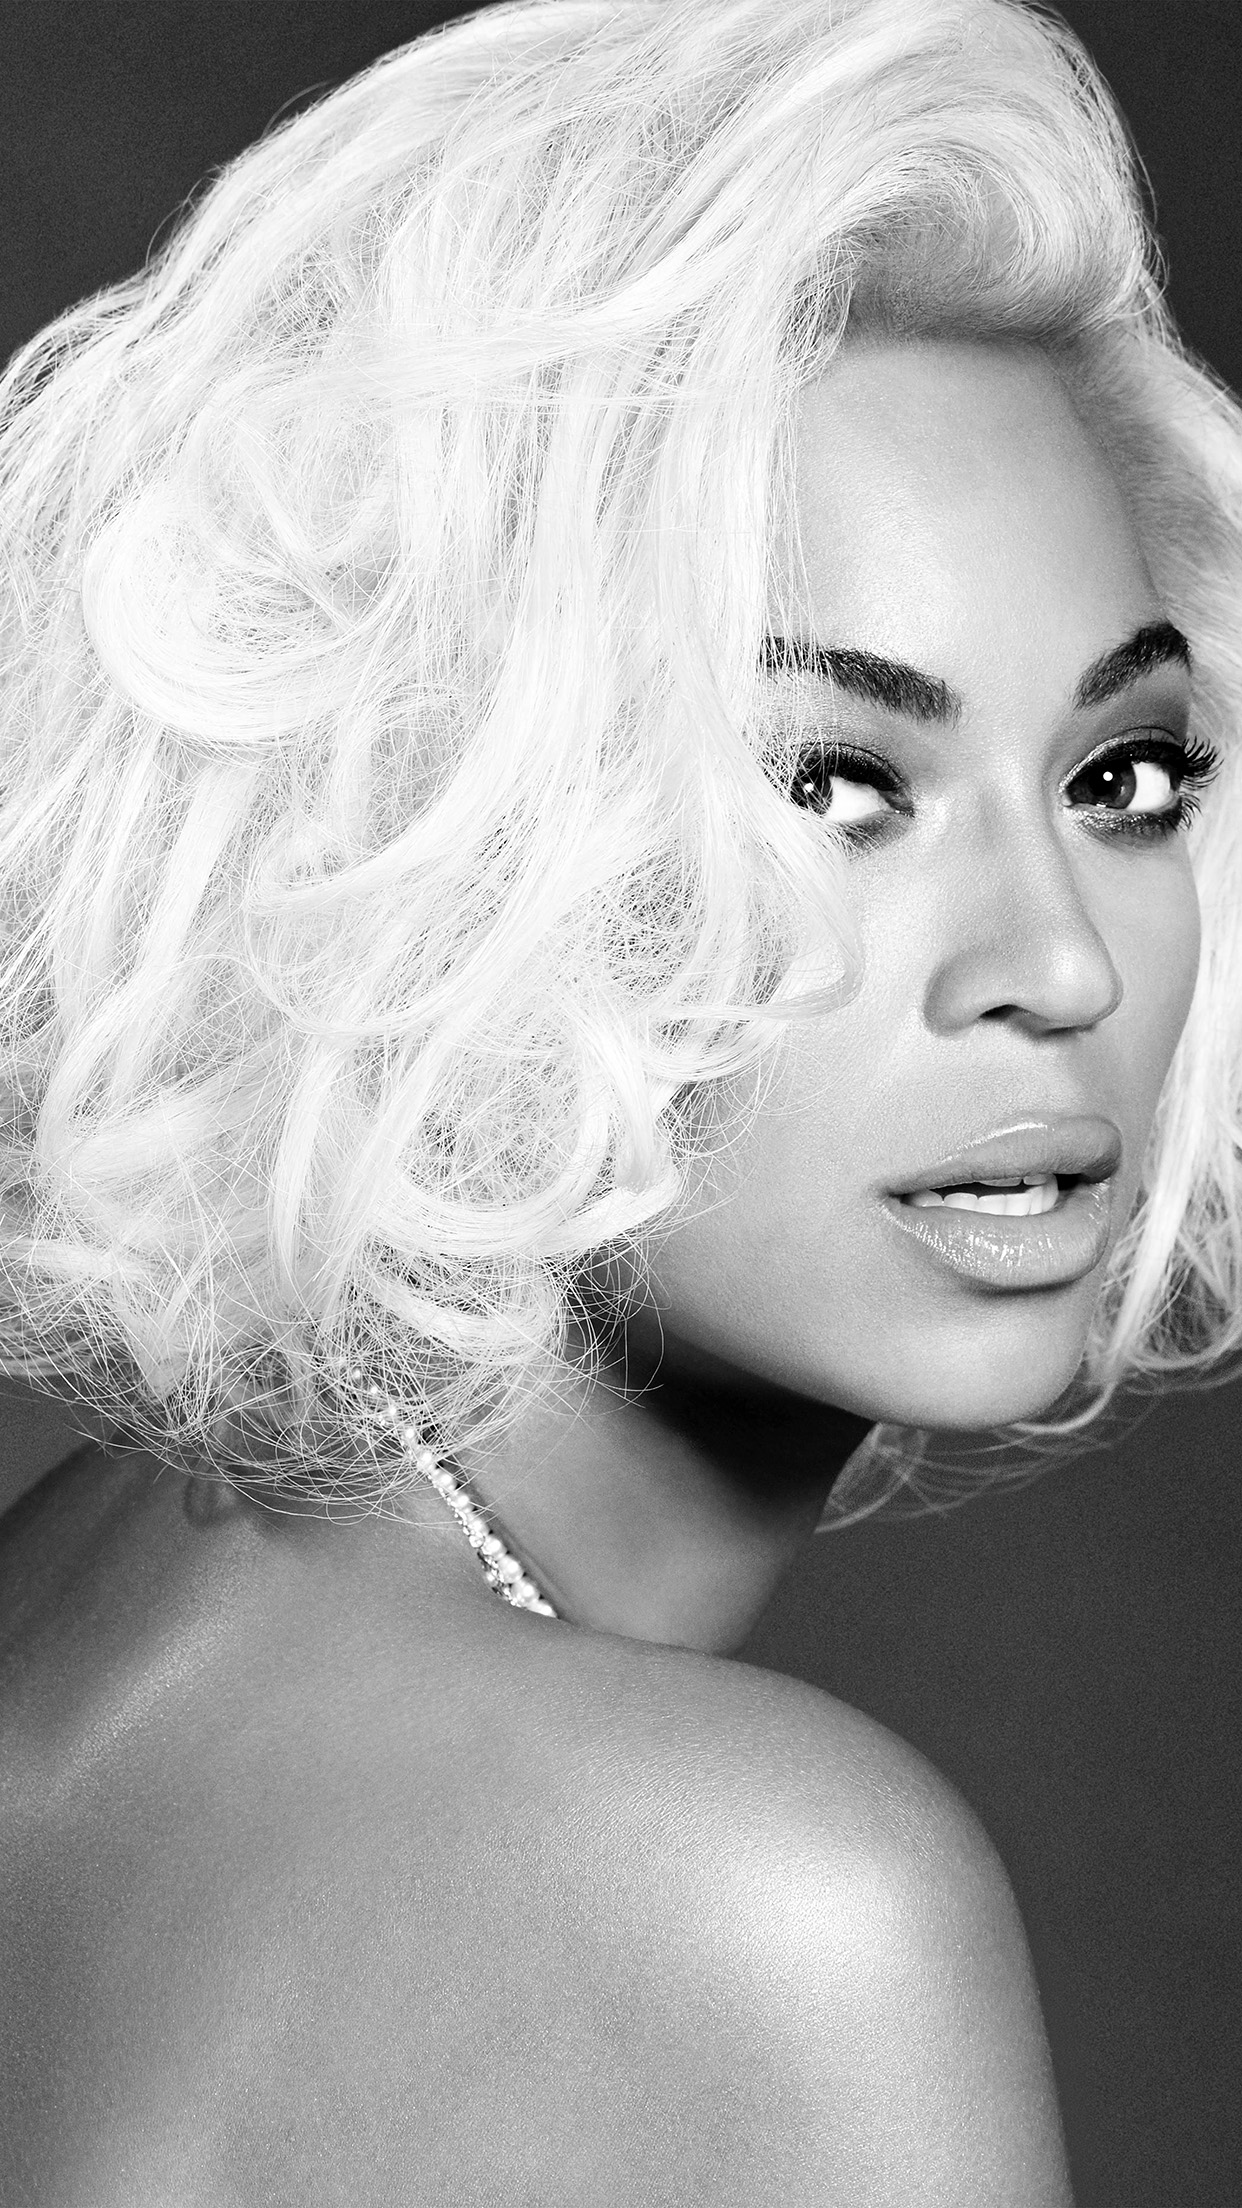 Beyonce Knowles Music Dark Bw Singer Android wallpaper Android